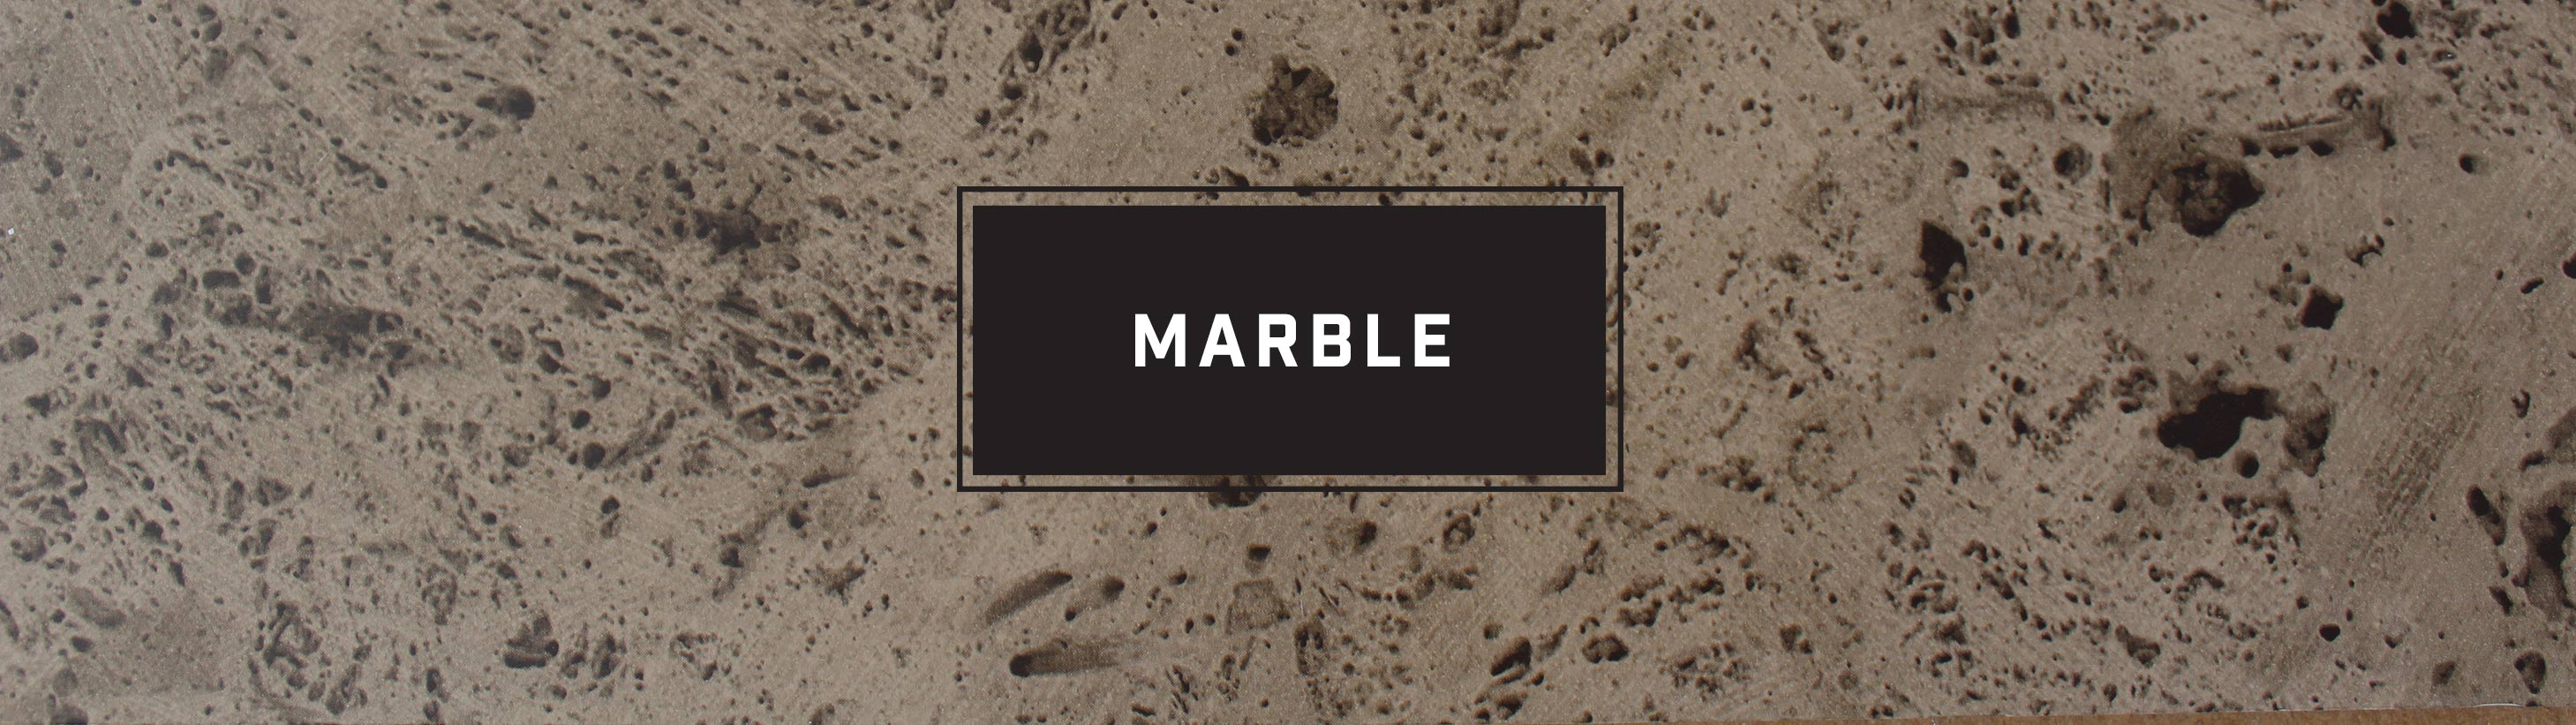 Featured Product: Marble